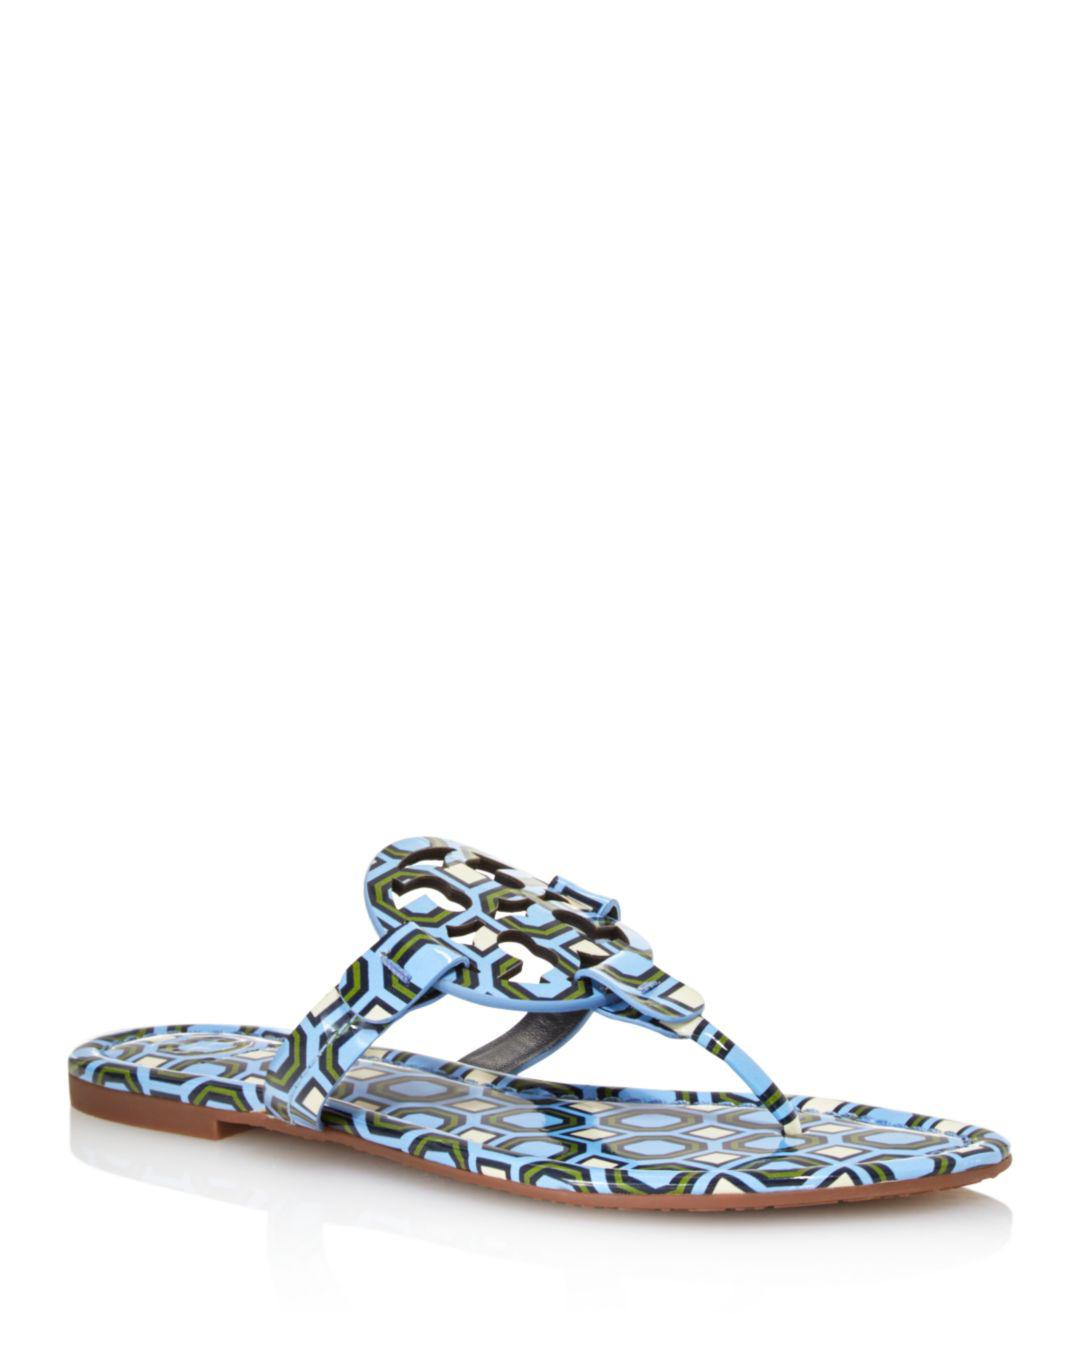 055ee452d Lyst - Tory Burch Women s Miller Patent Leather Thong Sandals in Blue